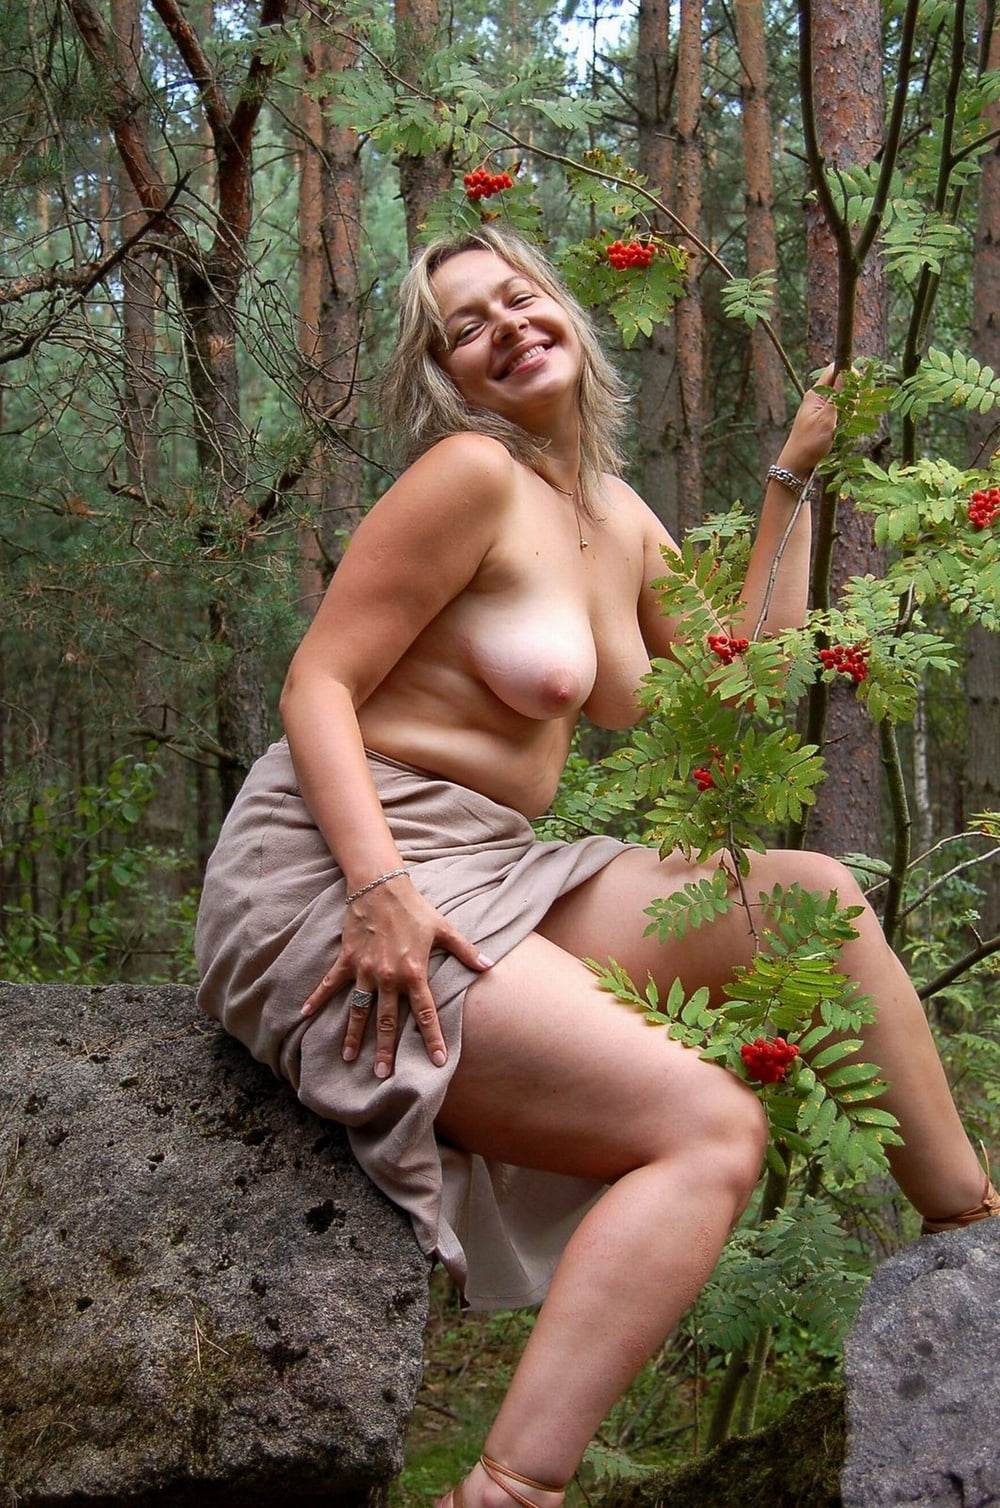 Wife naked forest, picture sex anal hot beach